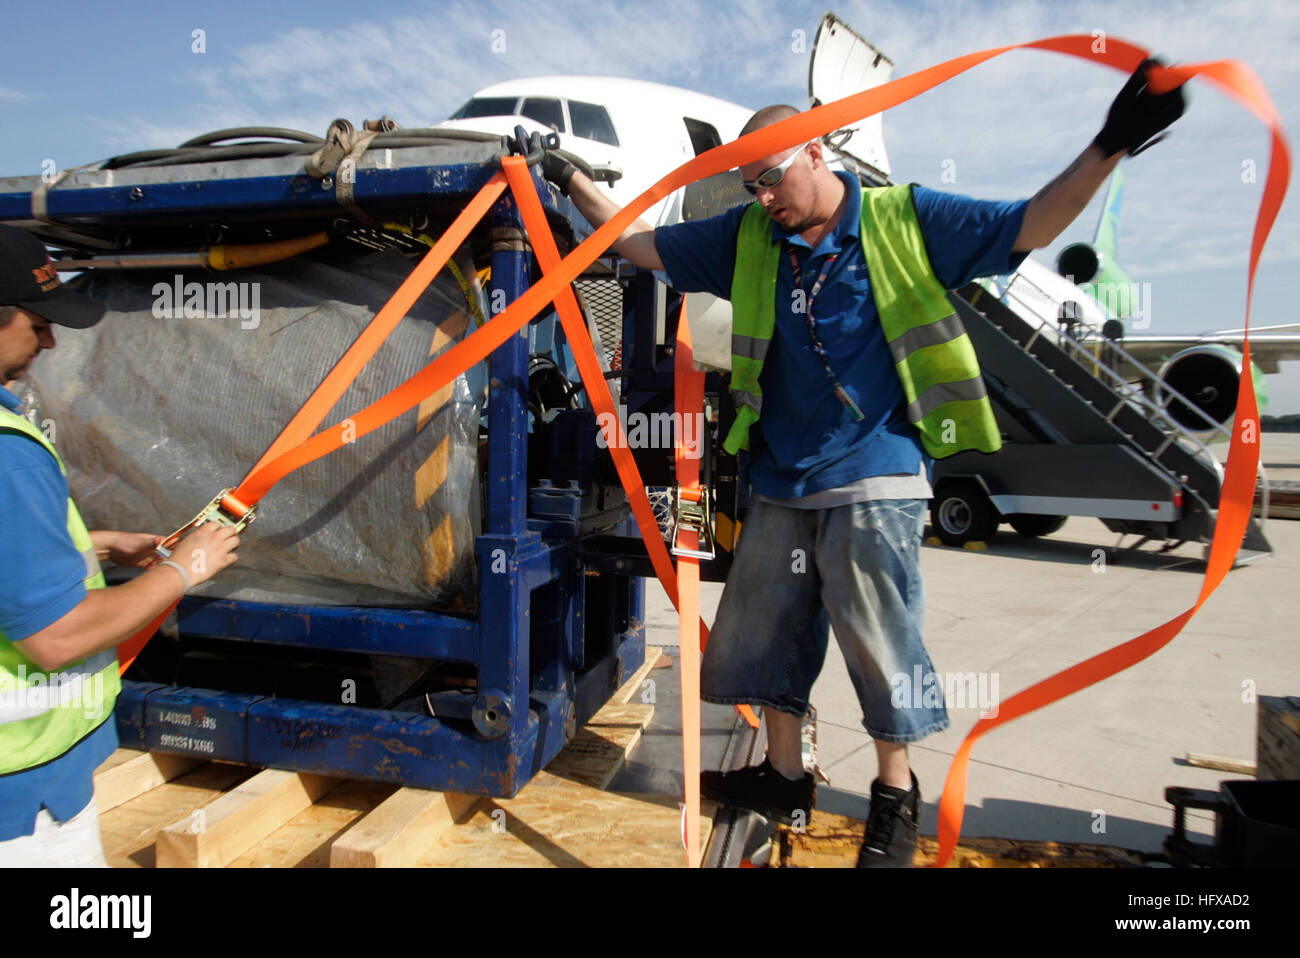 090608-N-3404S-046 DULLES, Va. (June 8, 2009) Mike King of DNL Cargo ties down a deep-sea cable June 8, 2009, at - Stock Image